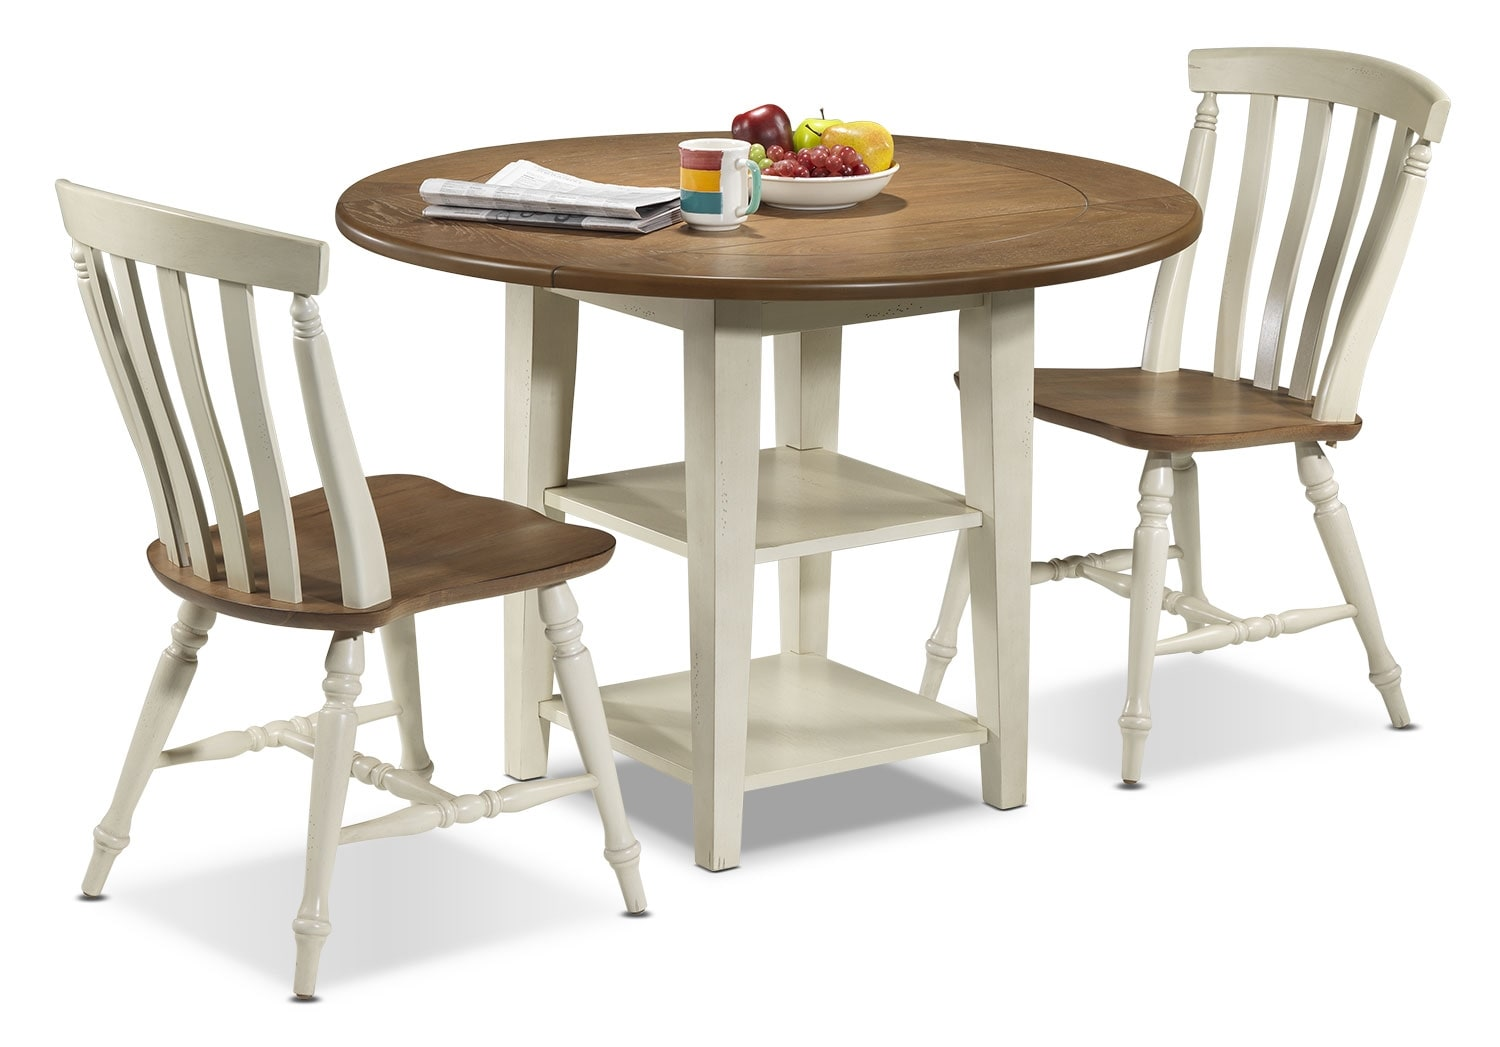 Fresco 3-Piece Dinette Set - Driftwood, Cream